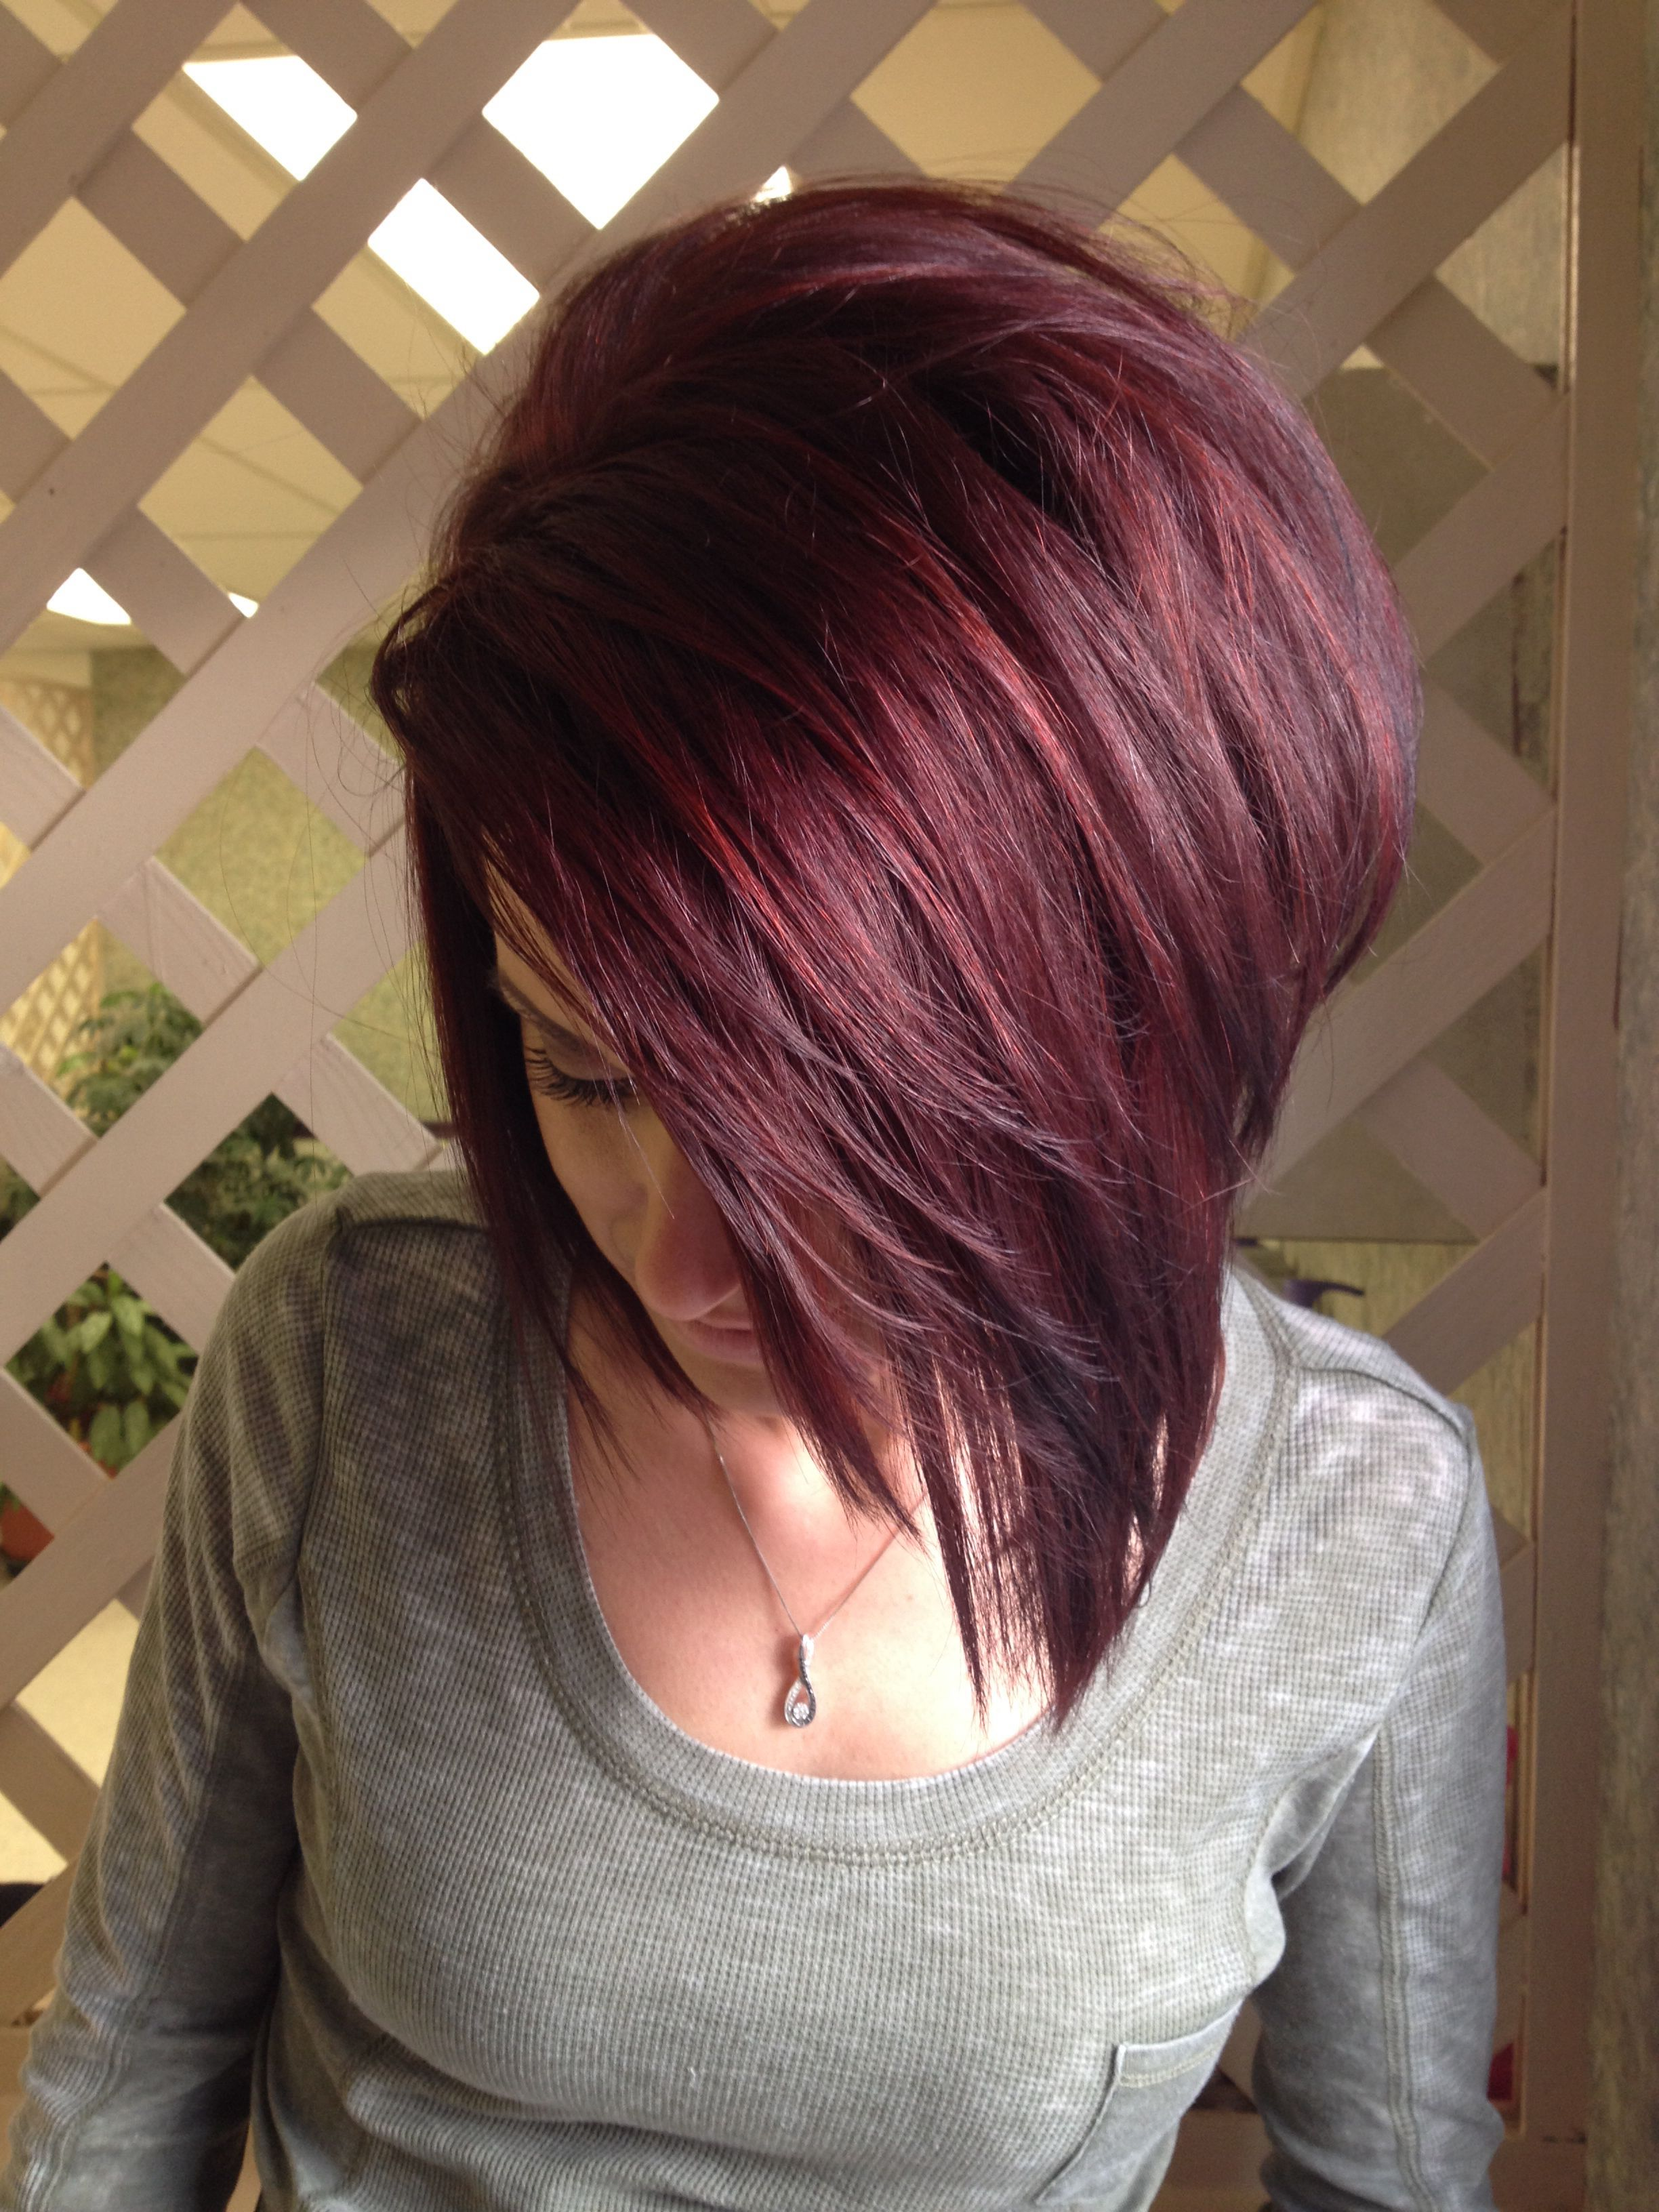 21 Of The Latest Popular Bob Hairstyles For Women Hair Colors